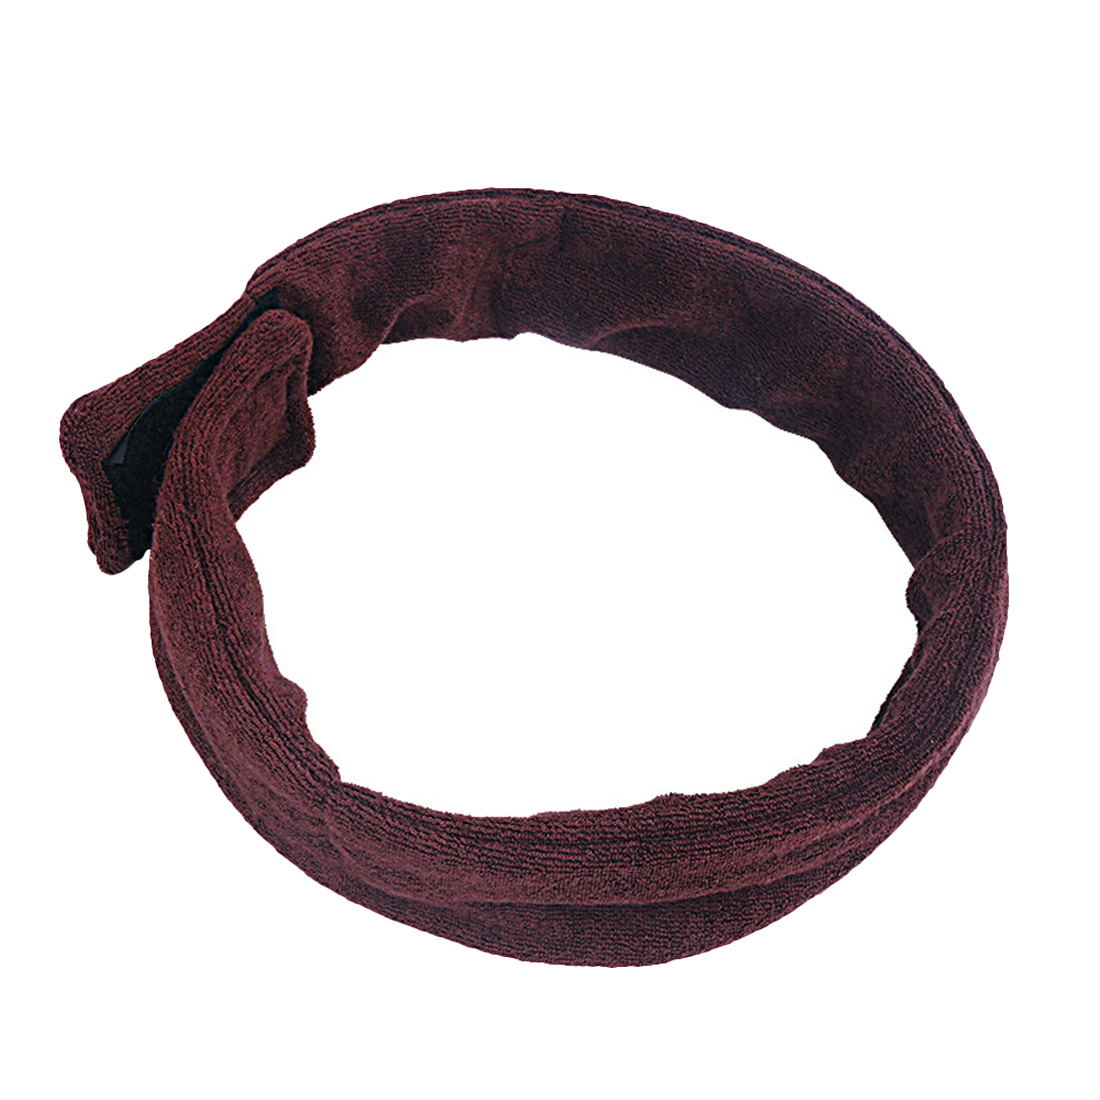 New Professional Dyed Hair Band Hairdressing Salon Cotton Extended Headscarf Round Head Towel Beauty Hairs Styling Tools in Women 39 s Hair Accessories from Apparel Accessories